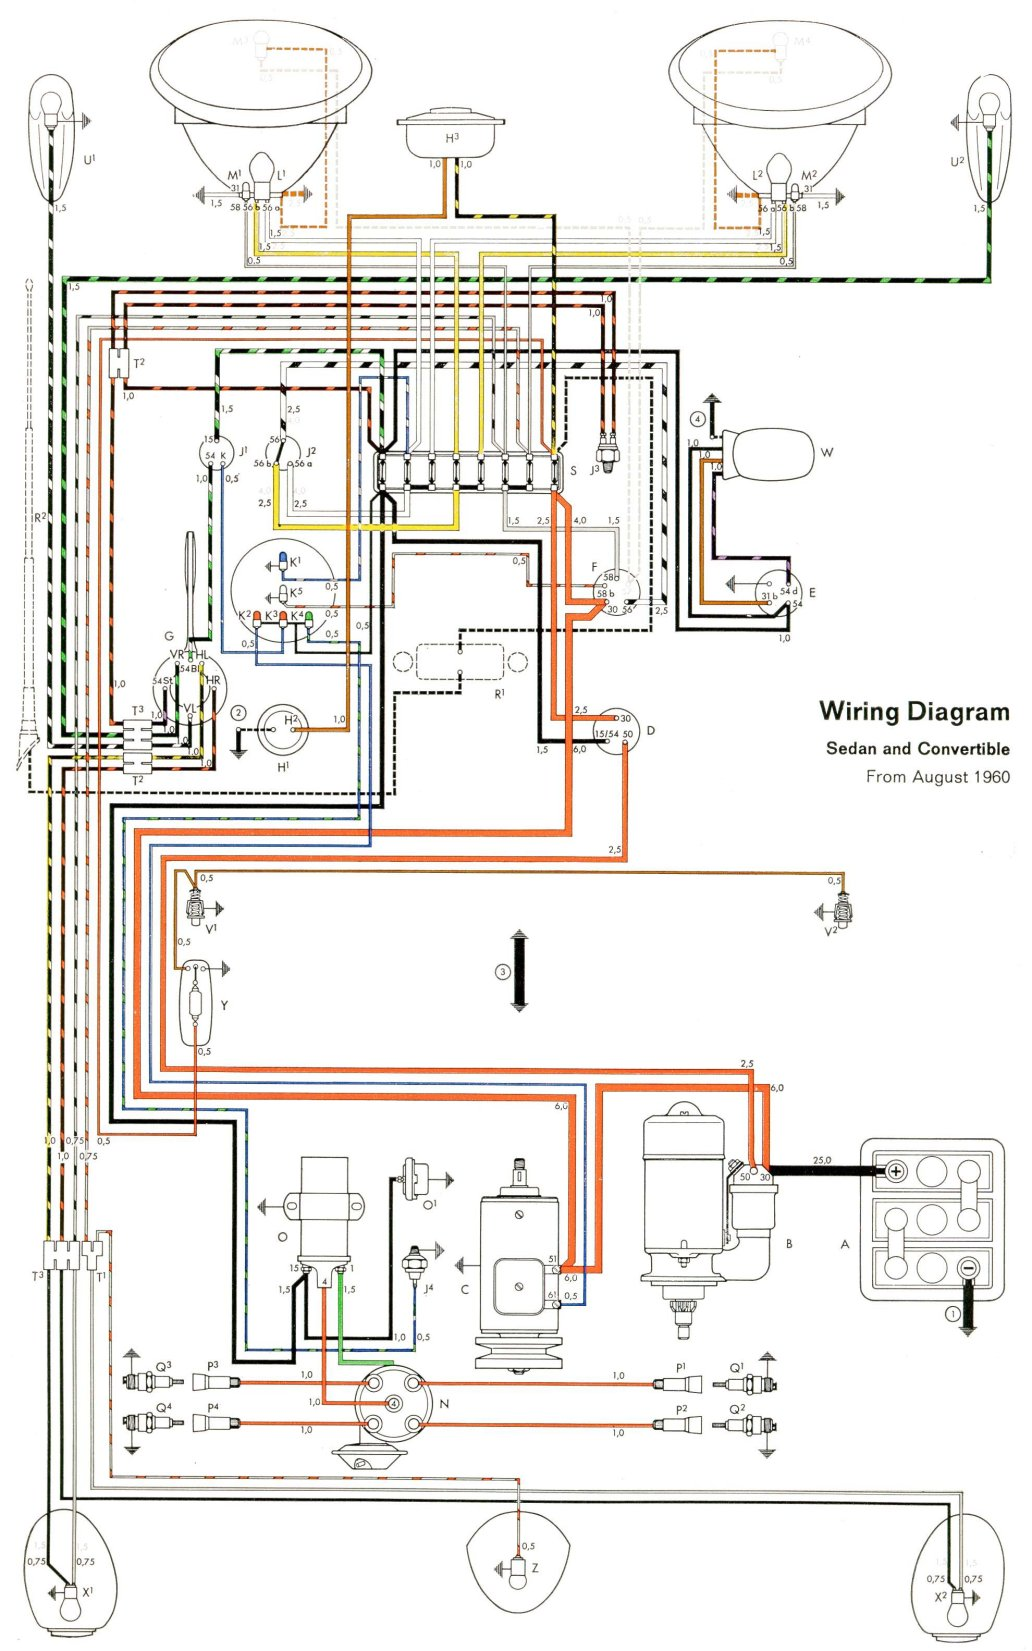 Type 1 Wiring Diagrams 1960 Corvette Diagram